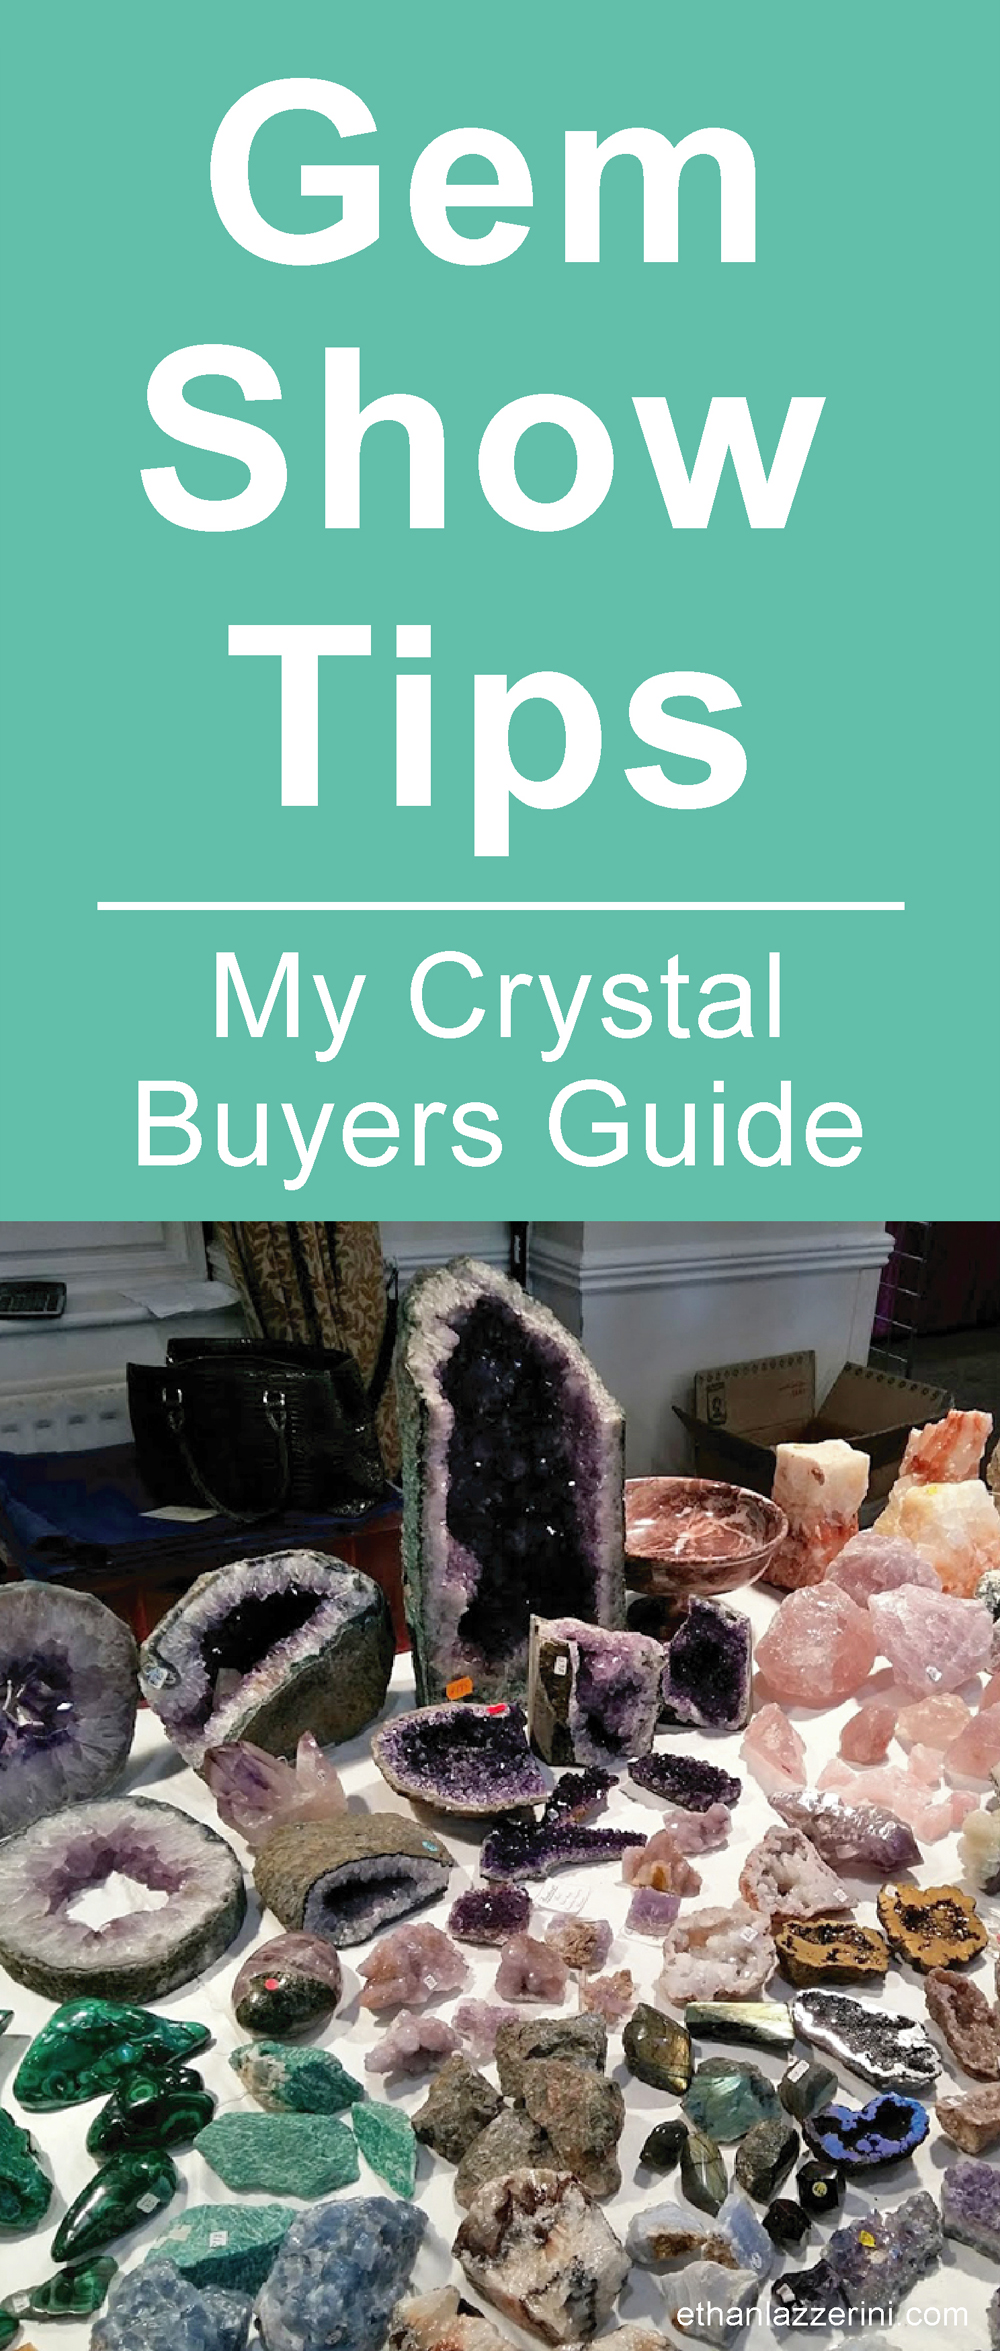 Gem Show Tips and Crystal Buyers Guide